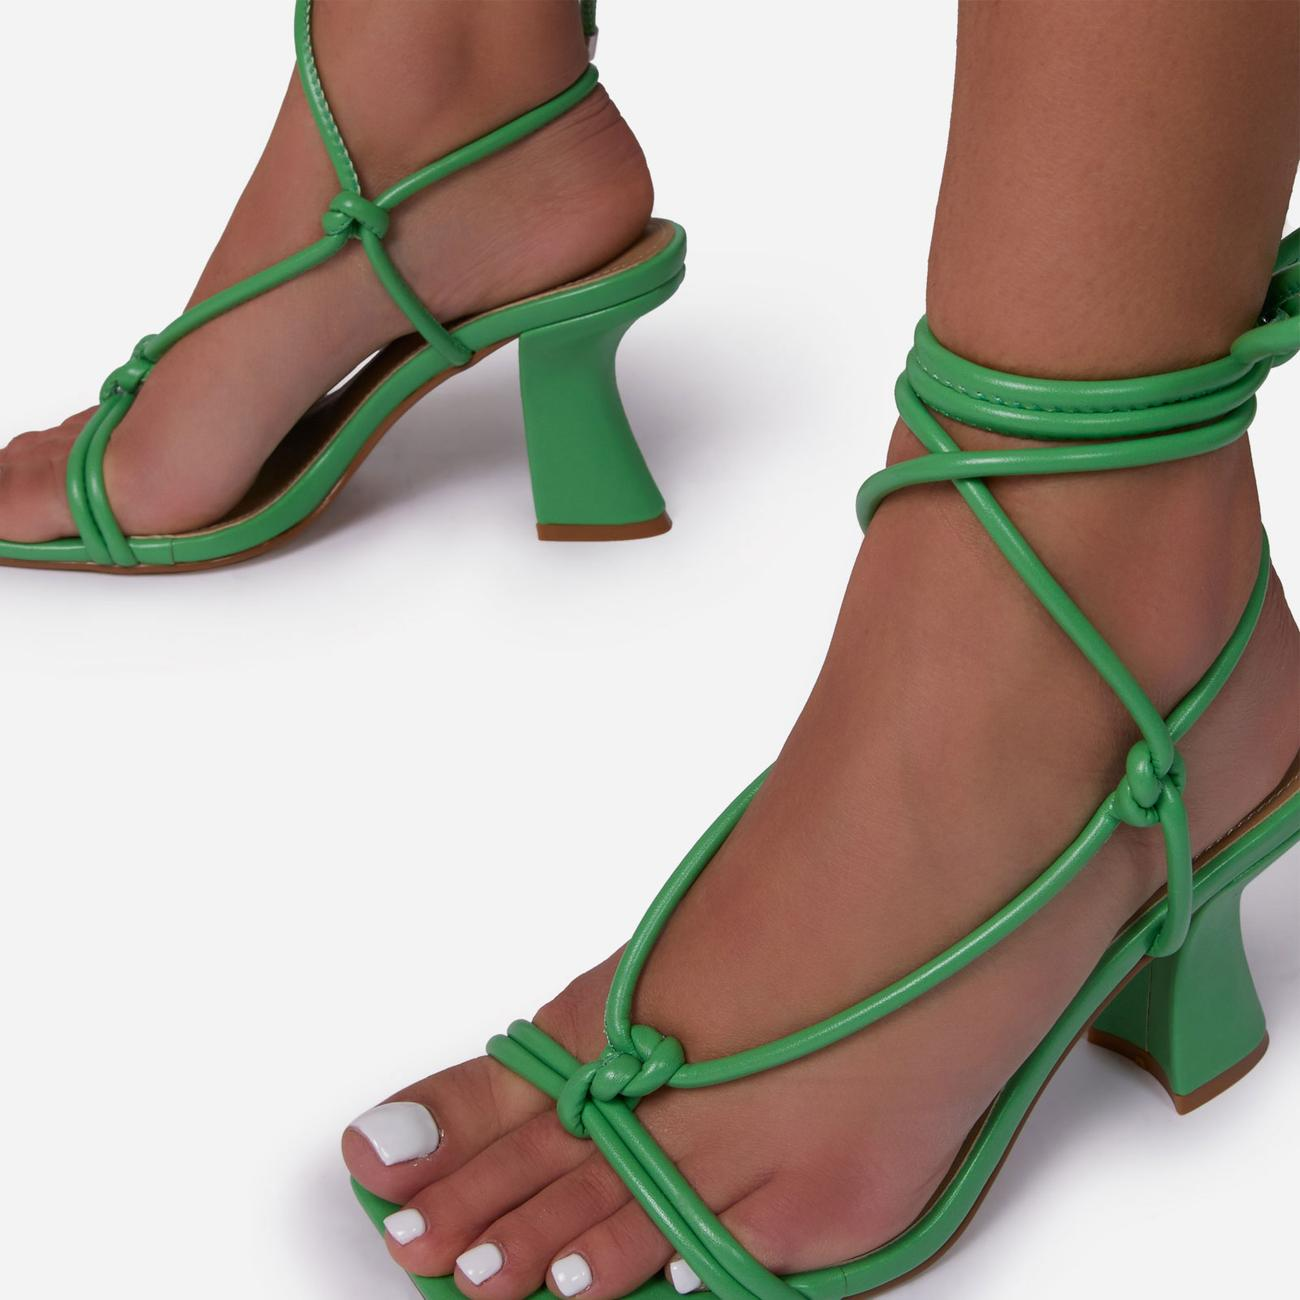 Harmony Knotted Detail Lace Up Square Toe Curved Low Block Heel In Green Faux Leather Image 3